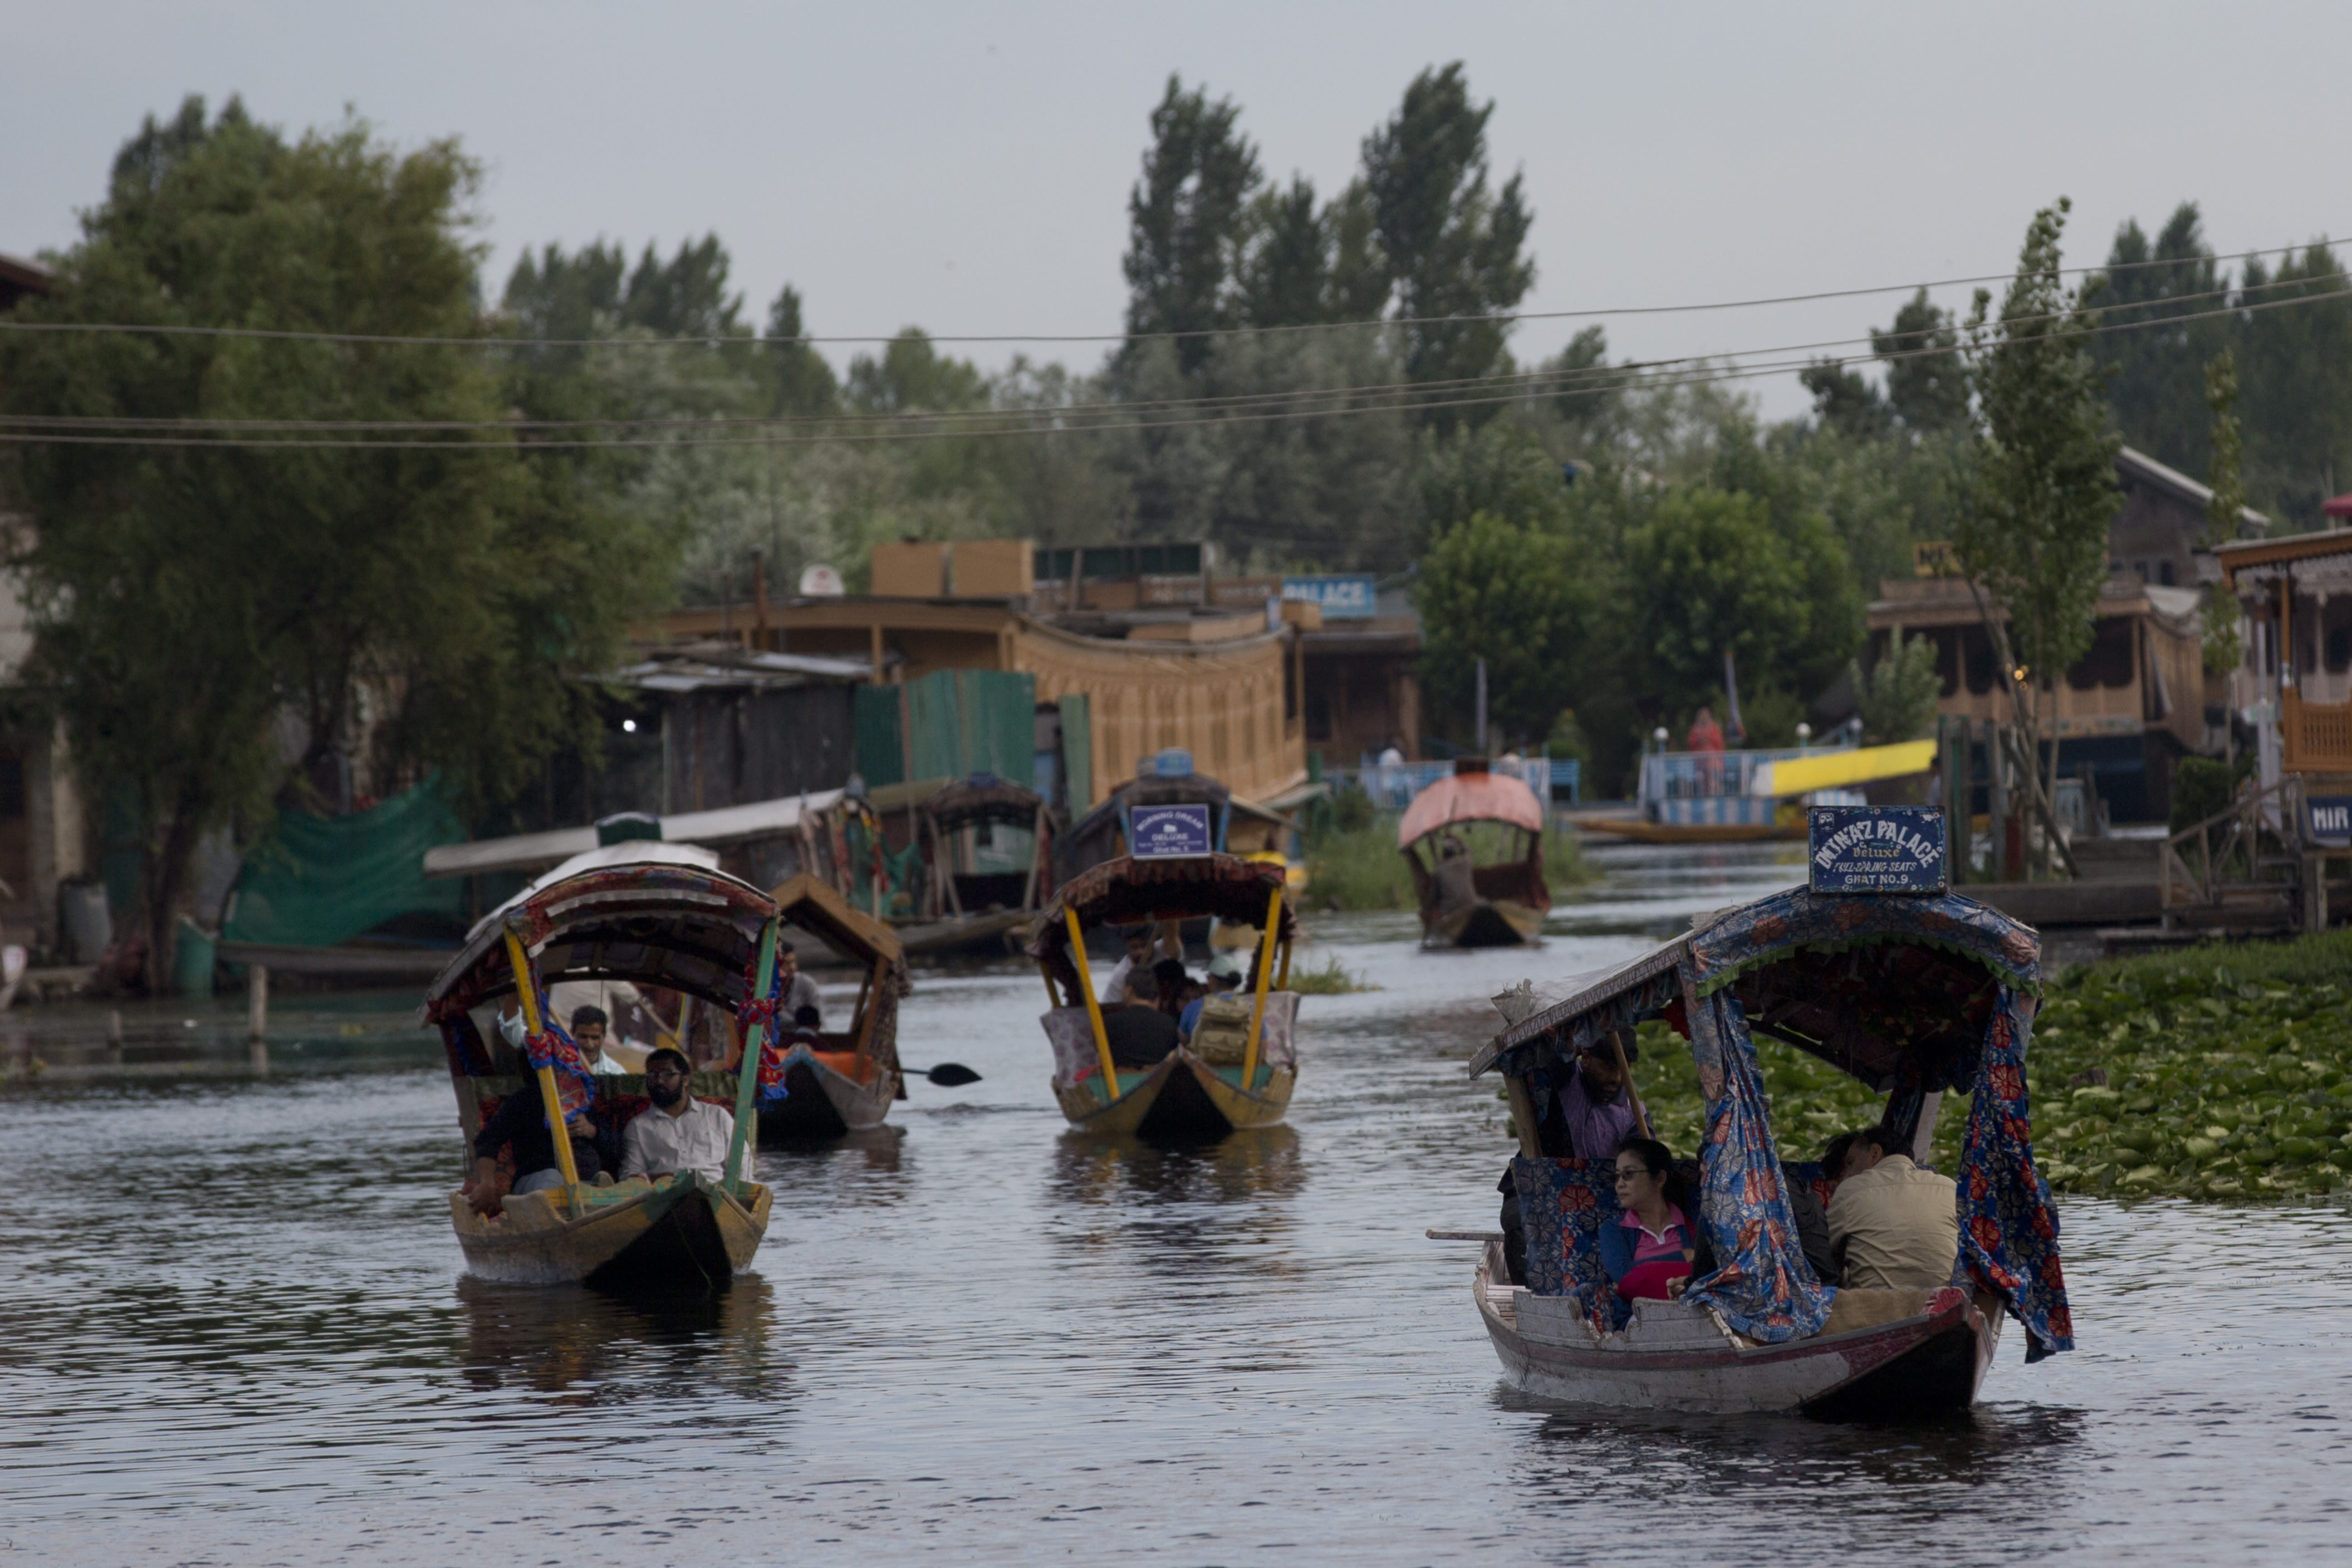 FILE - In this Saturday, Aug. 3, 2019, file photo, Tourists in Shikaras, a traditional gondola, cross the Dal Lake as they prepare to leave Srinagar, Indian controlled Kashmir. Authorities in Indian-controlled Kashmir are allowing tourists back into the region two months after ordering them to leave, citing security concerns. The local government had instructed tourists and Hindu pilgrims to leave on Aug. 2, three days before India stripped the Muslim-majority region of its statehood and special semi-autonomous status. (AP Photo/Dar Yasin, File)